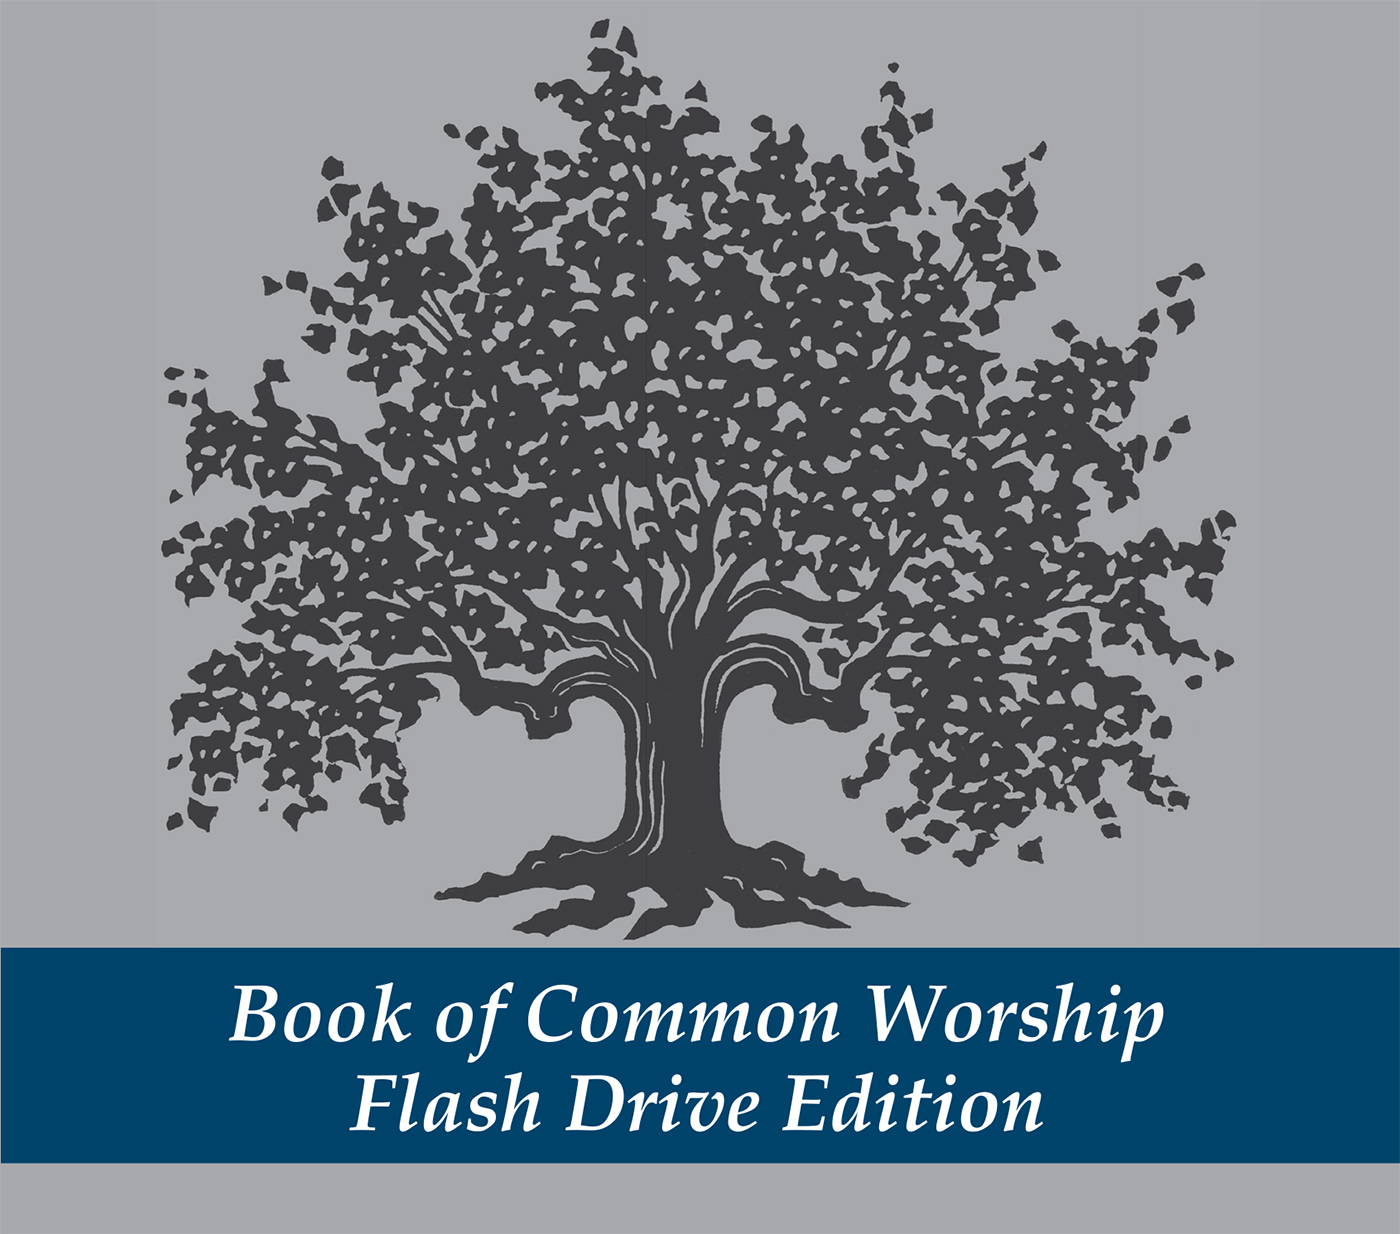 Book of Common Worship, Flash Drive Edition